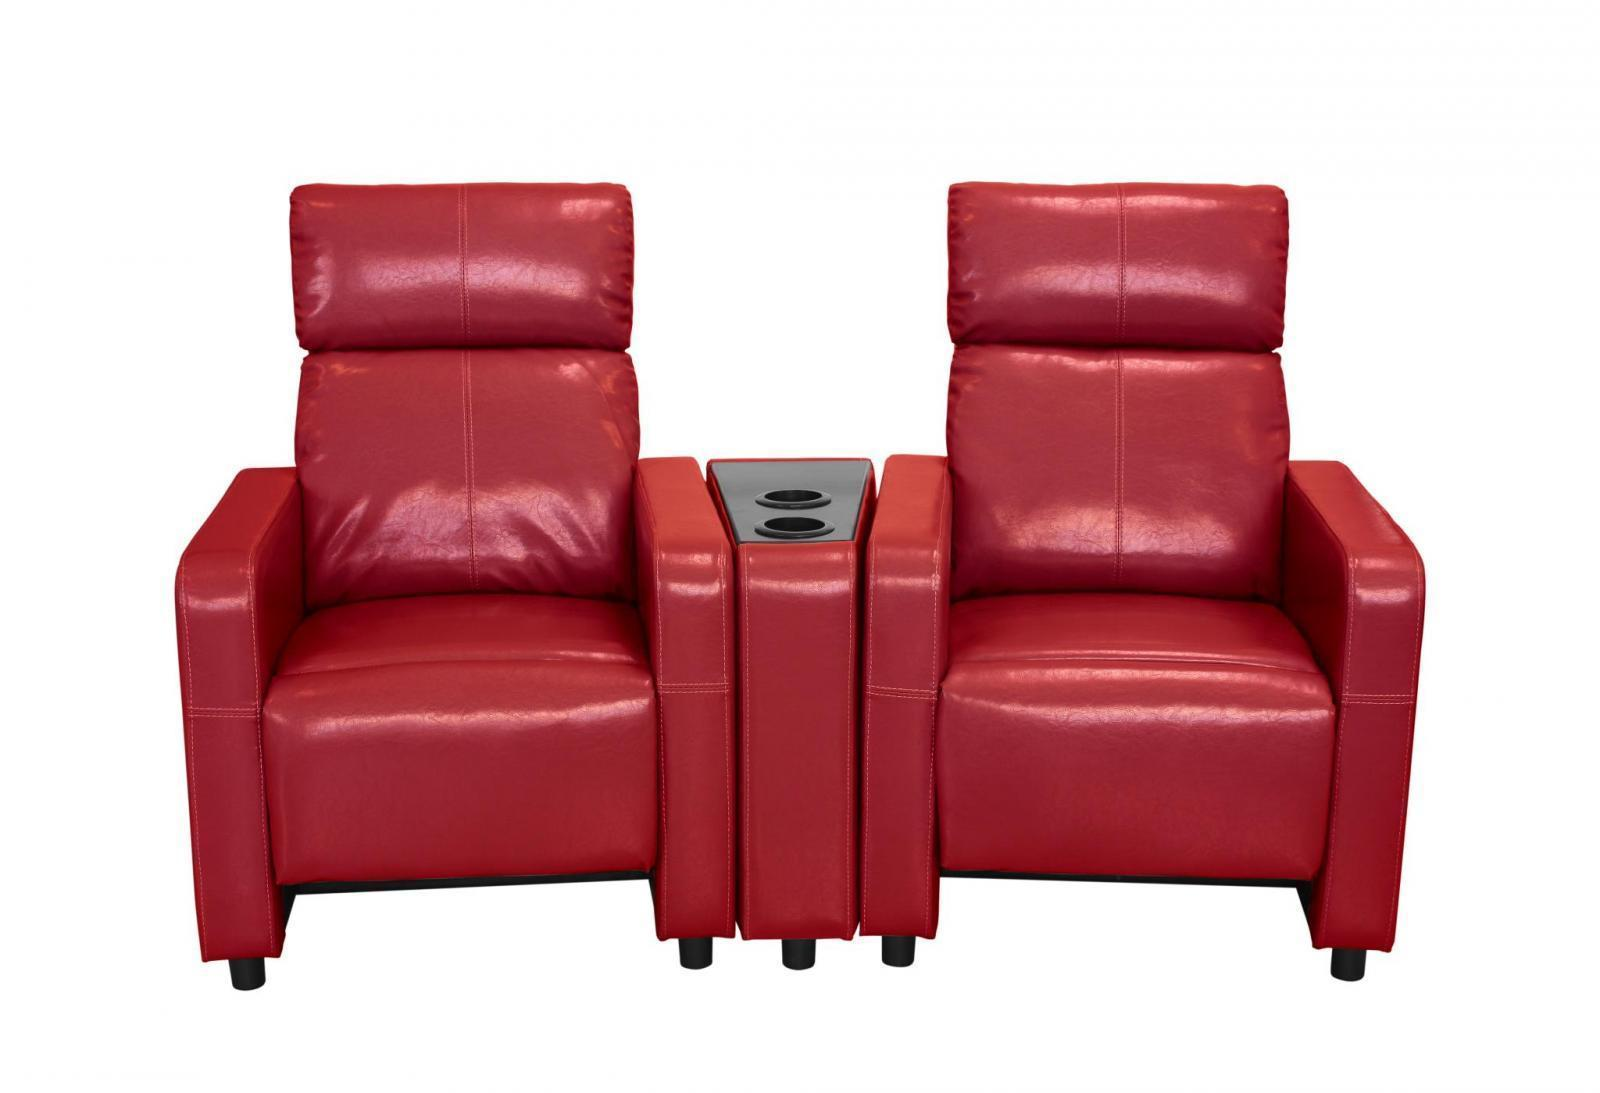 movie chairs for sale t4 spa chair home theater seating only 3 left at 60